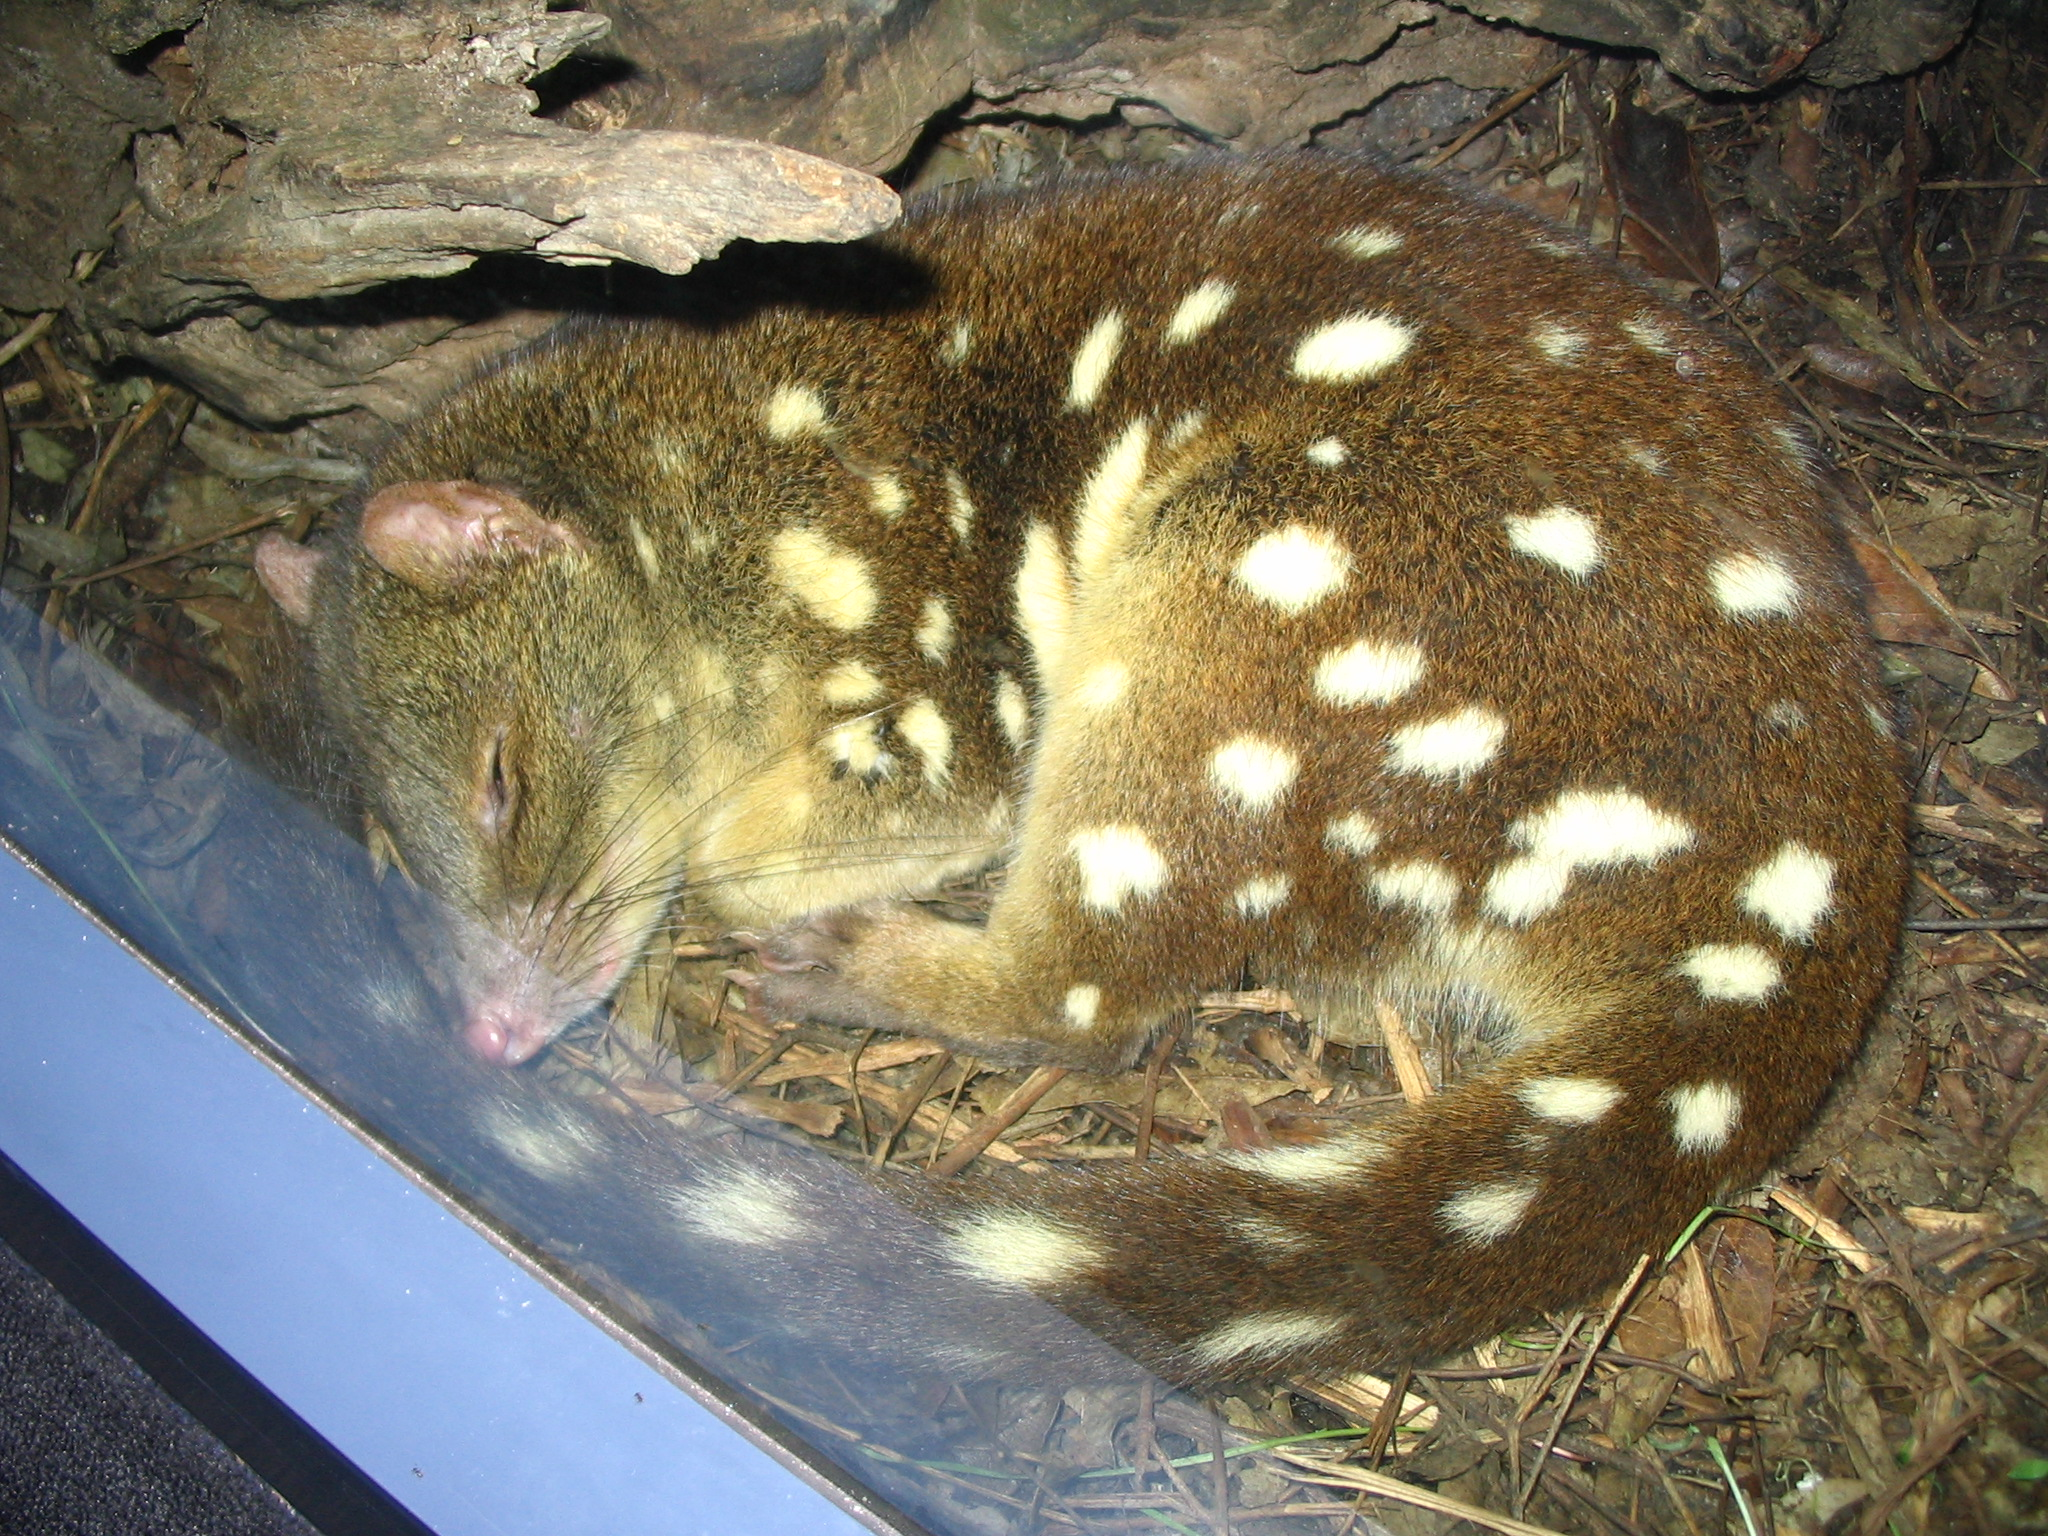 http://upload.wikimedia.org/wikipedia/commons/0/03/Spotted-tail_quoll_sleeping_at_Sydney_Wildlife_World.jpg